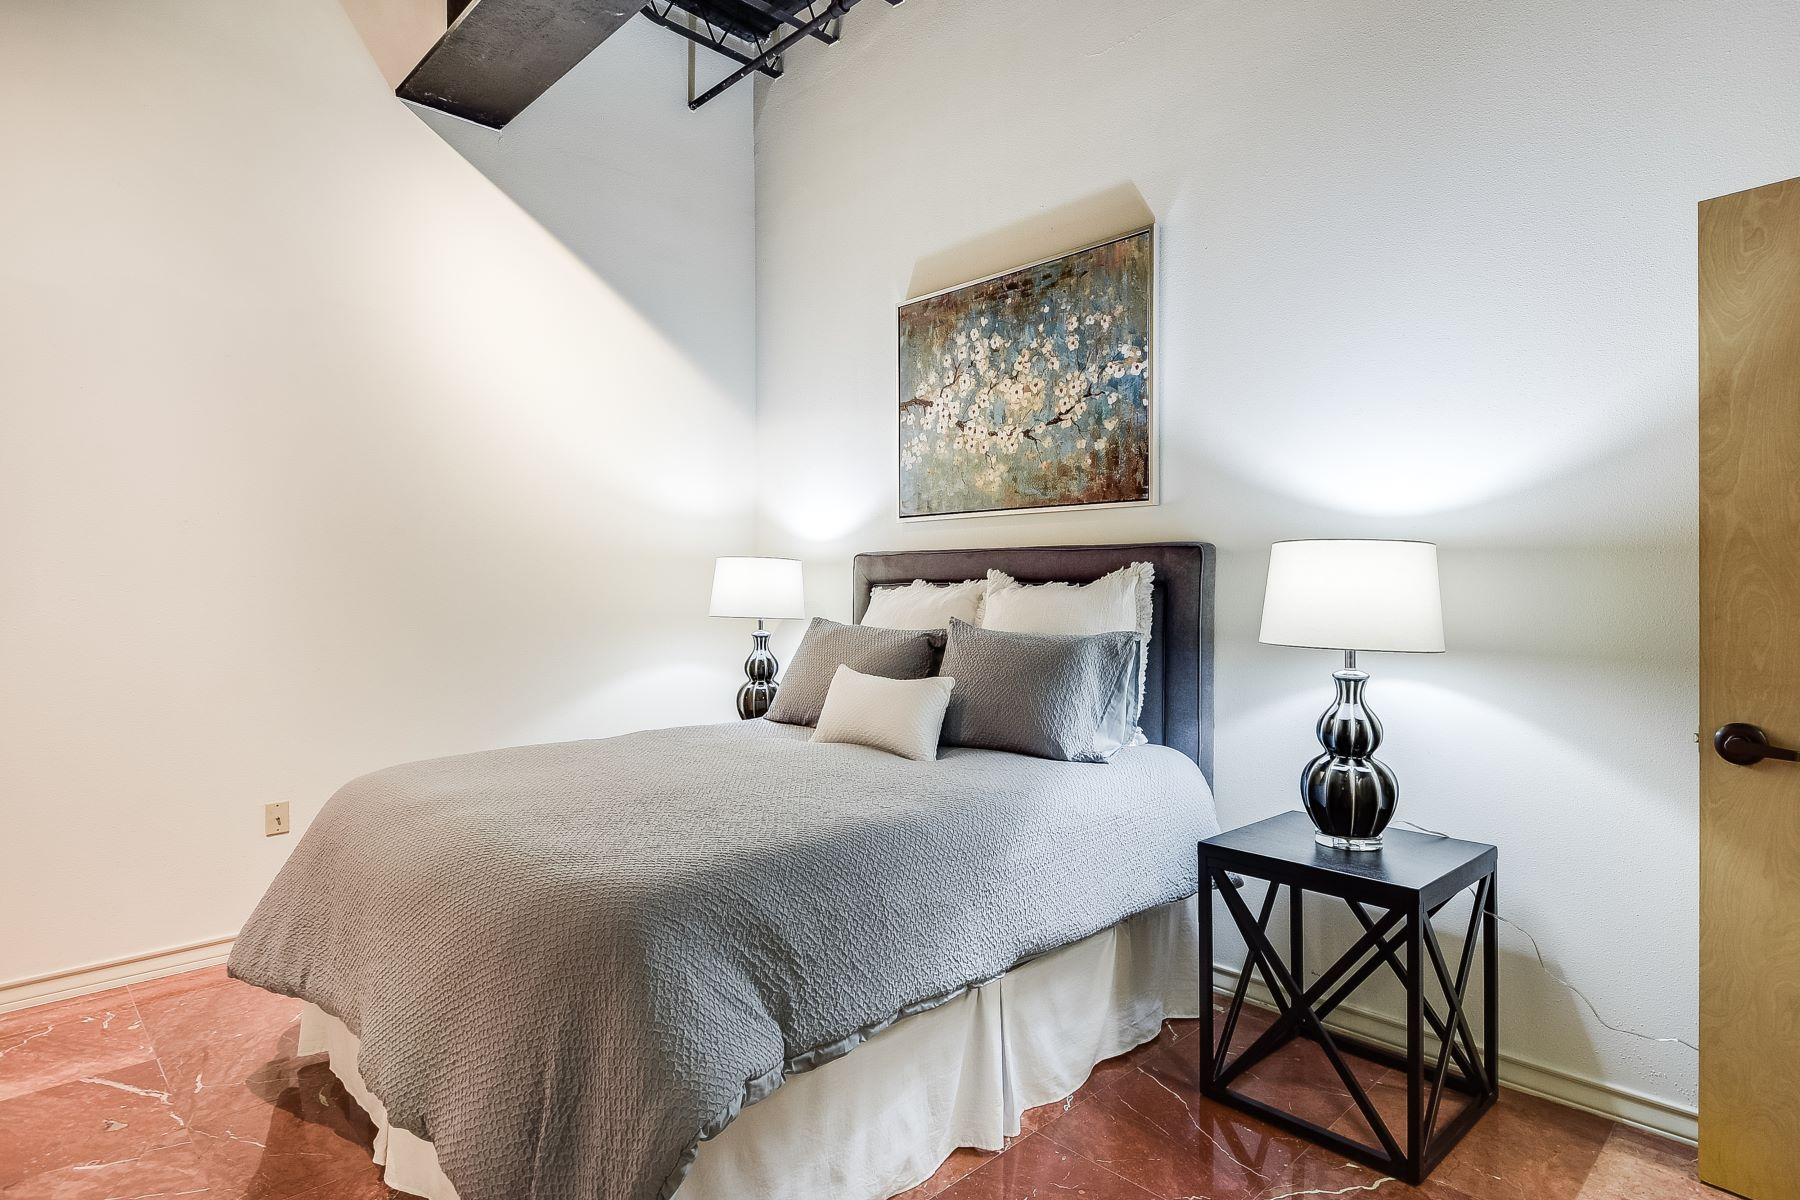 Additional photo for property listing at Fantastic Views in the Heart of Downtown 214 East Travis Street Unit 204 San Antonio, Texas 78205 United States